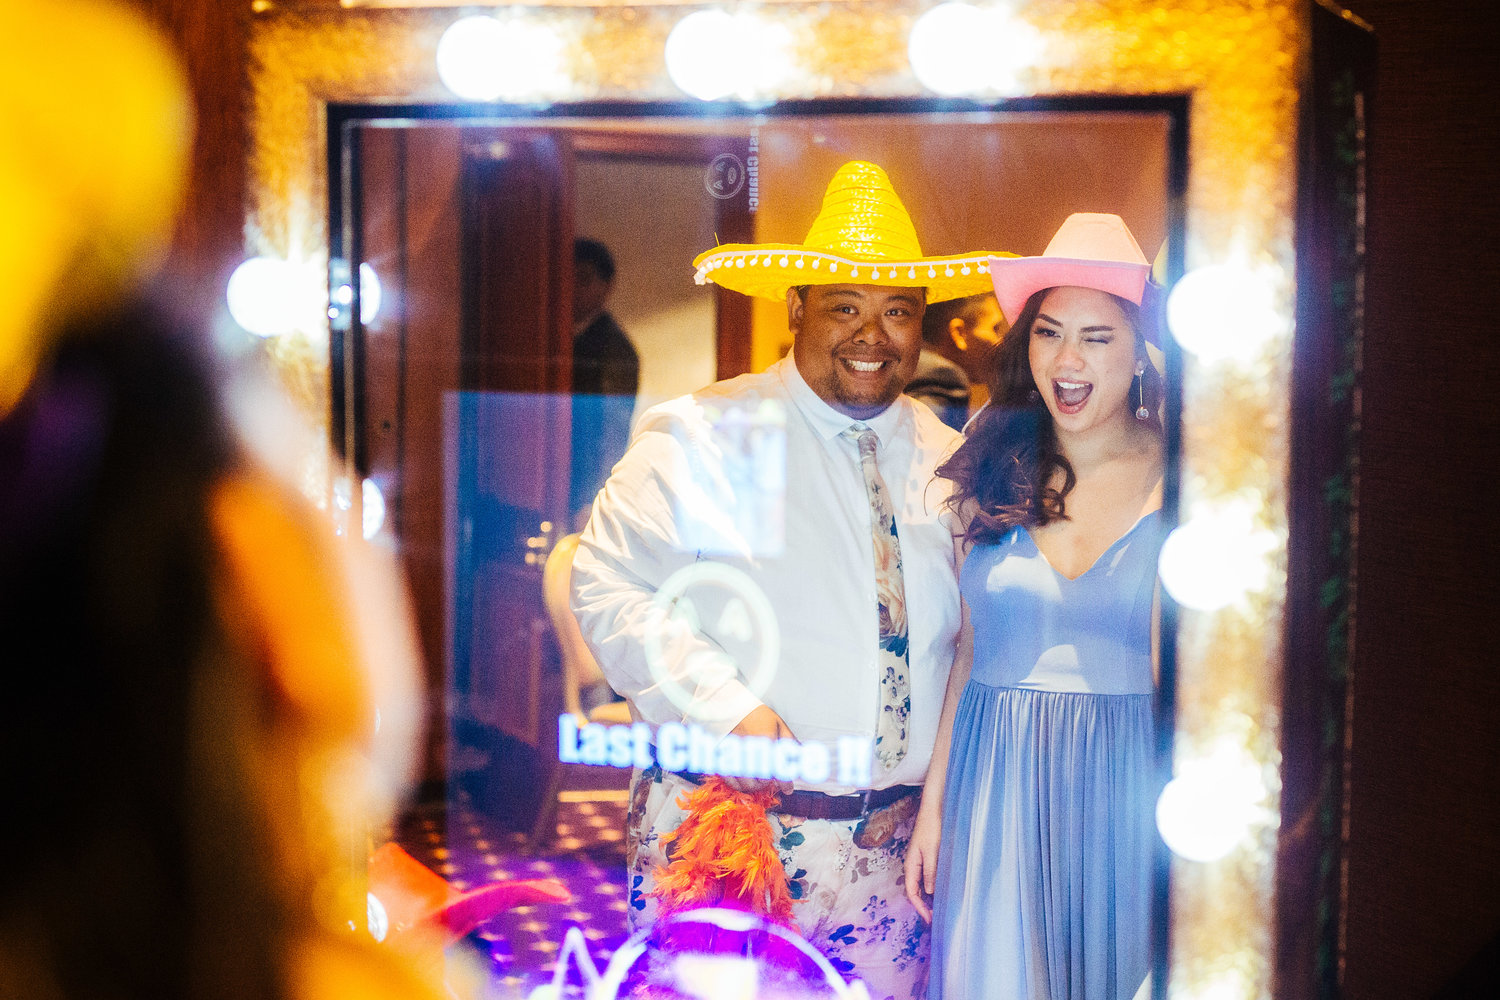 magic mirror photo booth hire london